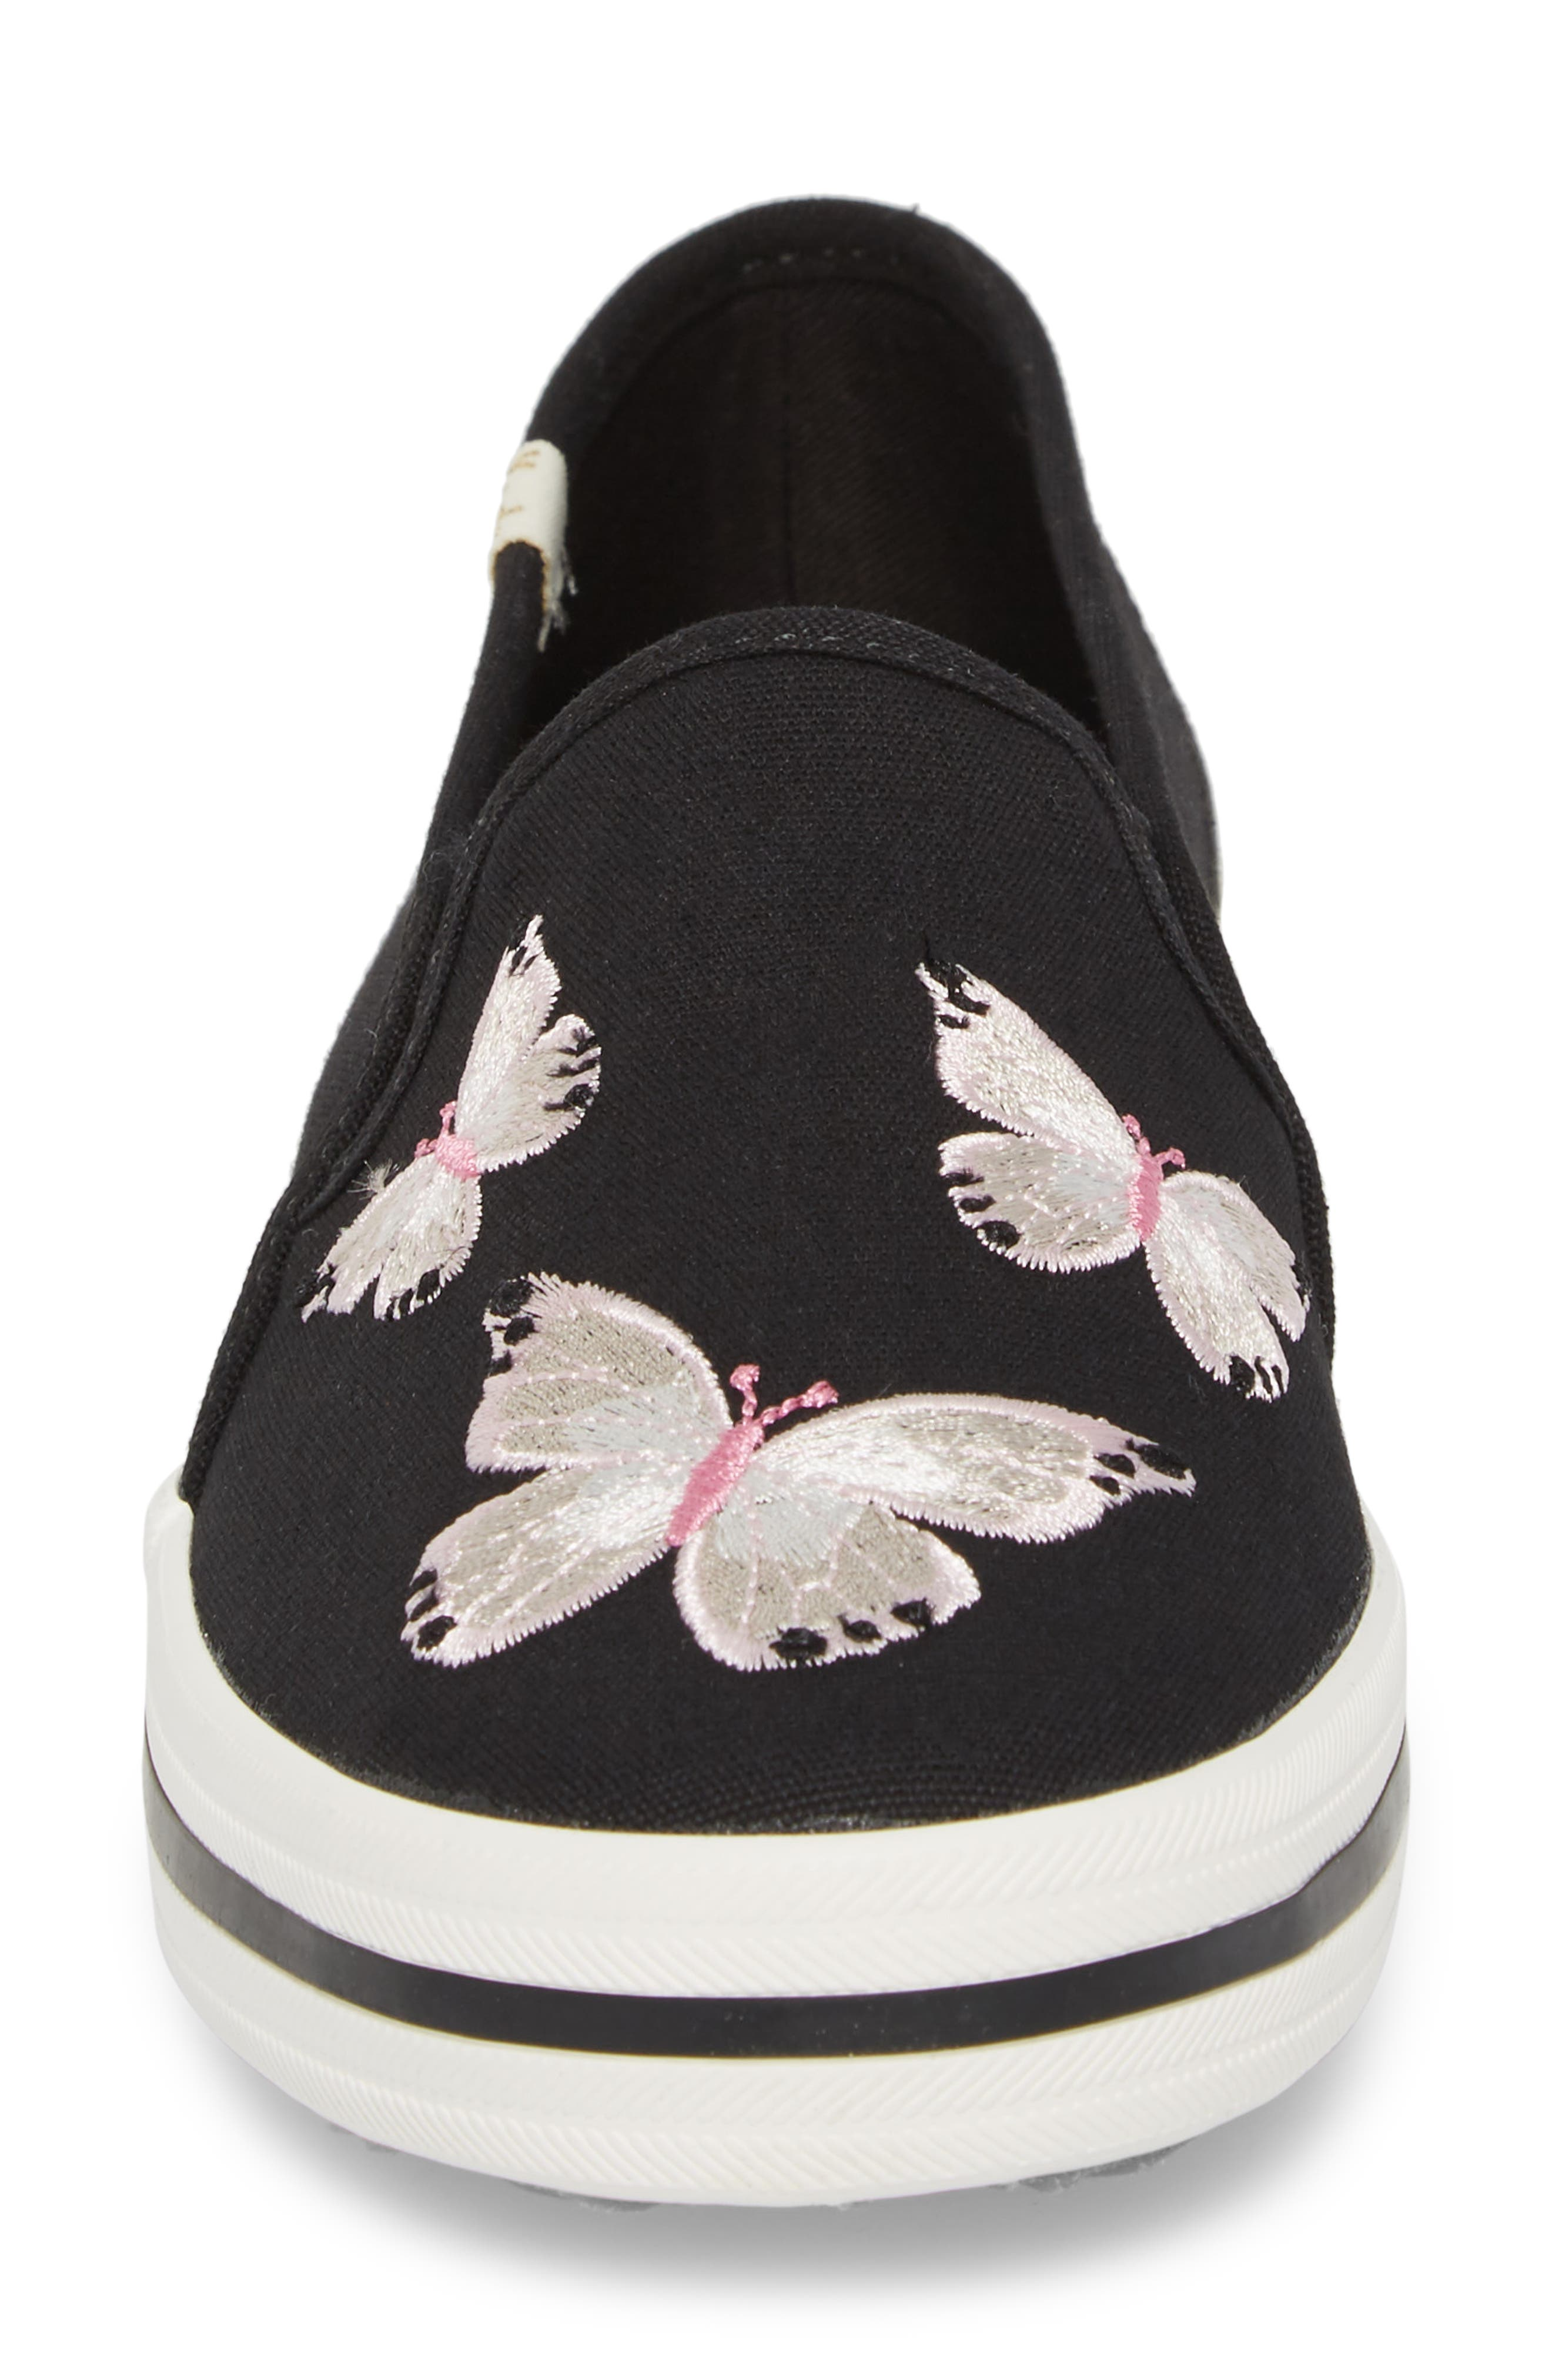 butterfly double decker slip-on sneaker,                             Alternate thumbnail 4, color,                             Black